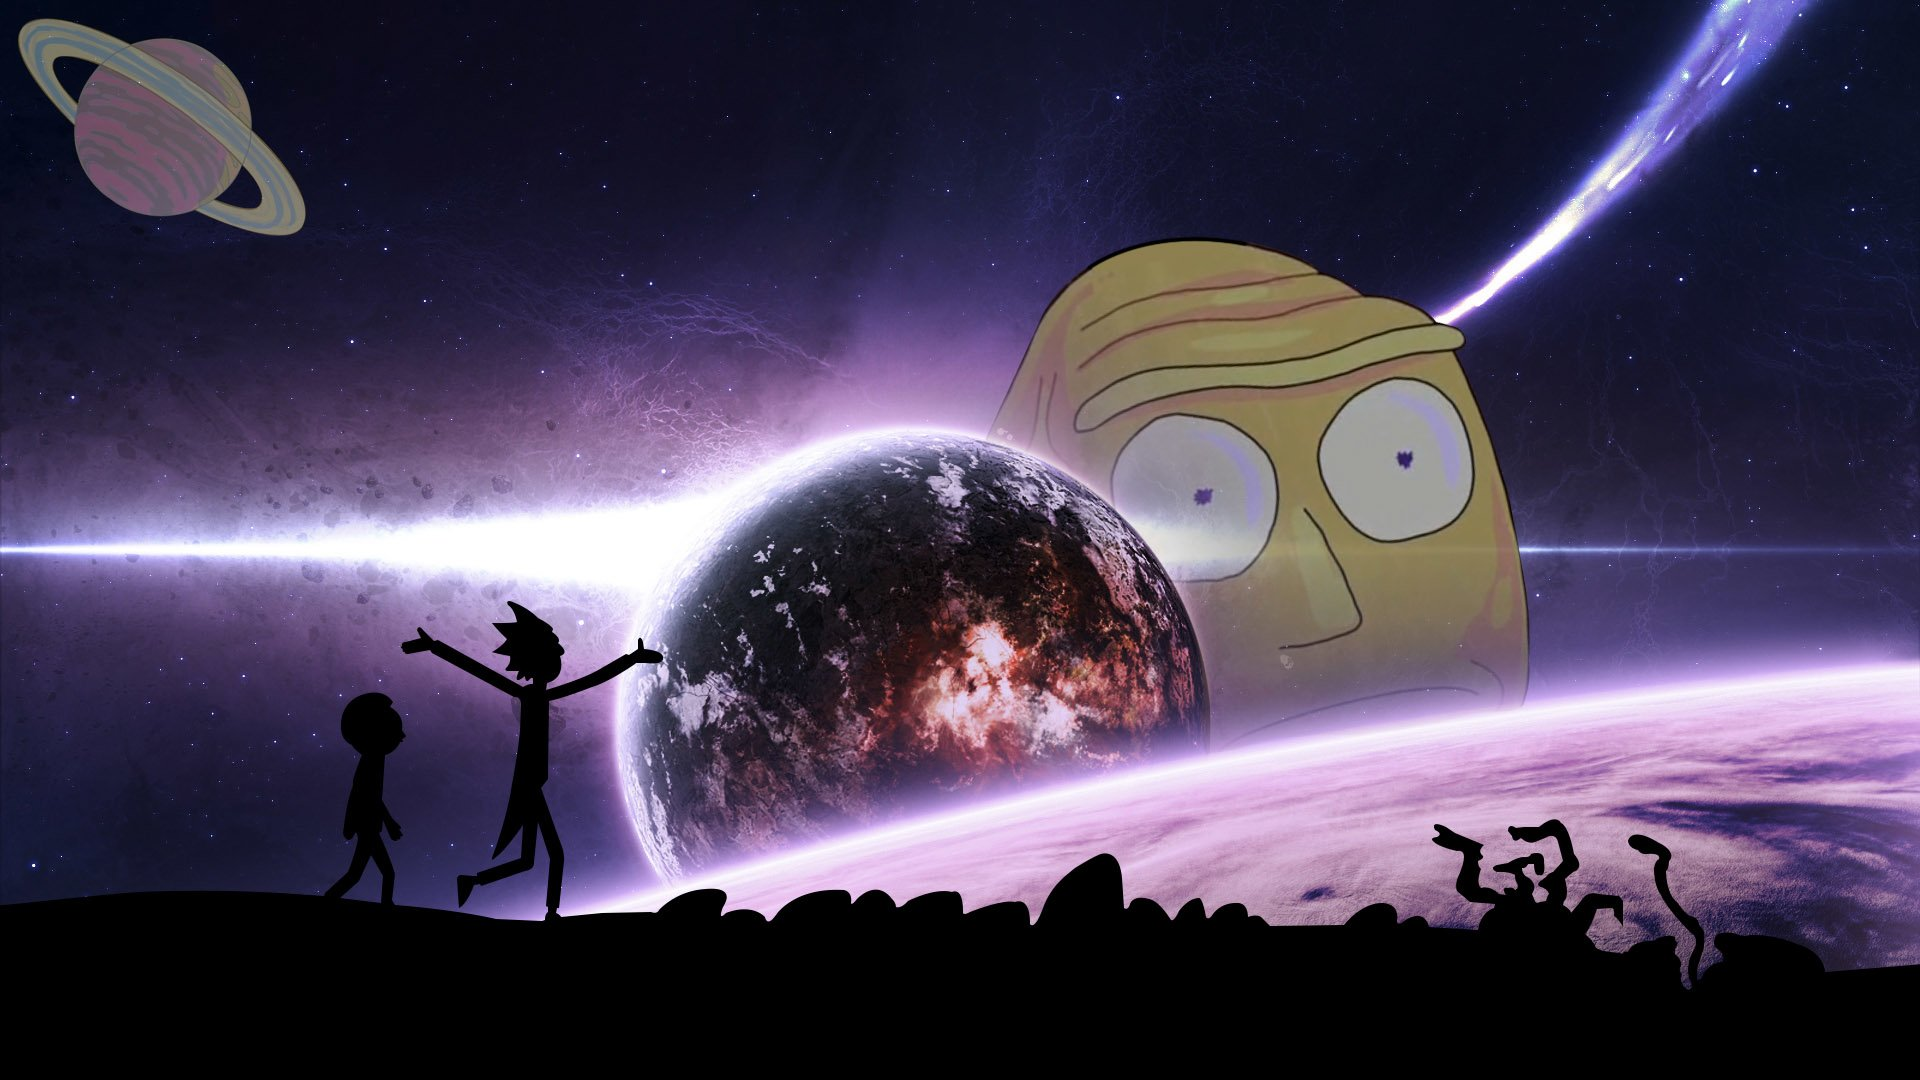 Rick_and Mory_Space HD Wallpaper